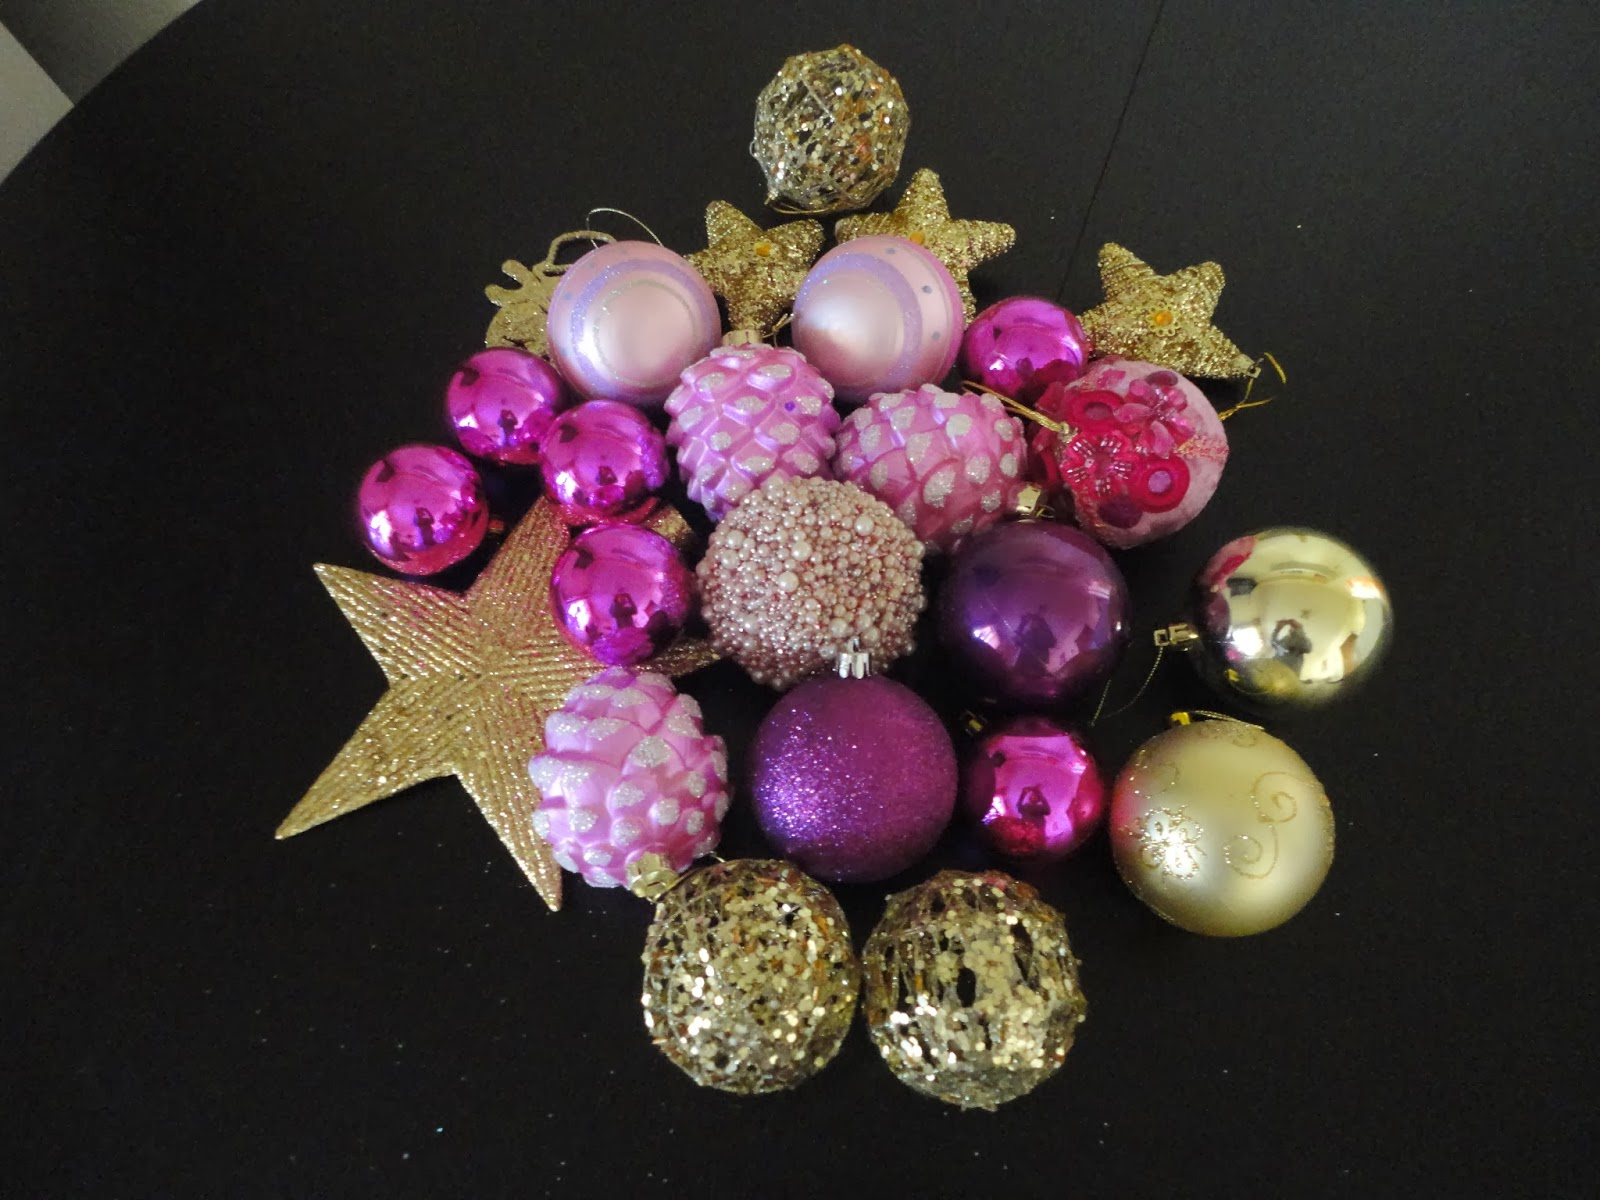 Pink And Gold Christmas Decorations - So this year my white tree is more girly with pink purple gold and white christmas ornaments multicolored cupcakes candies sweets donuts not real and pink